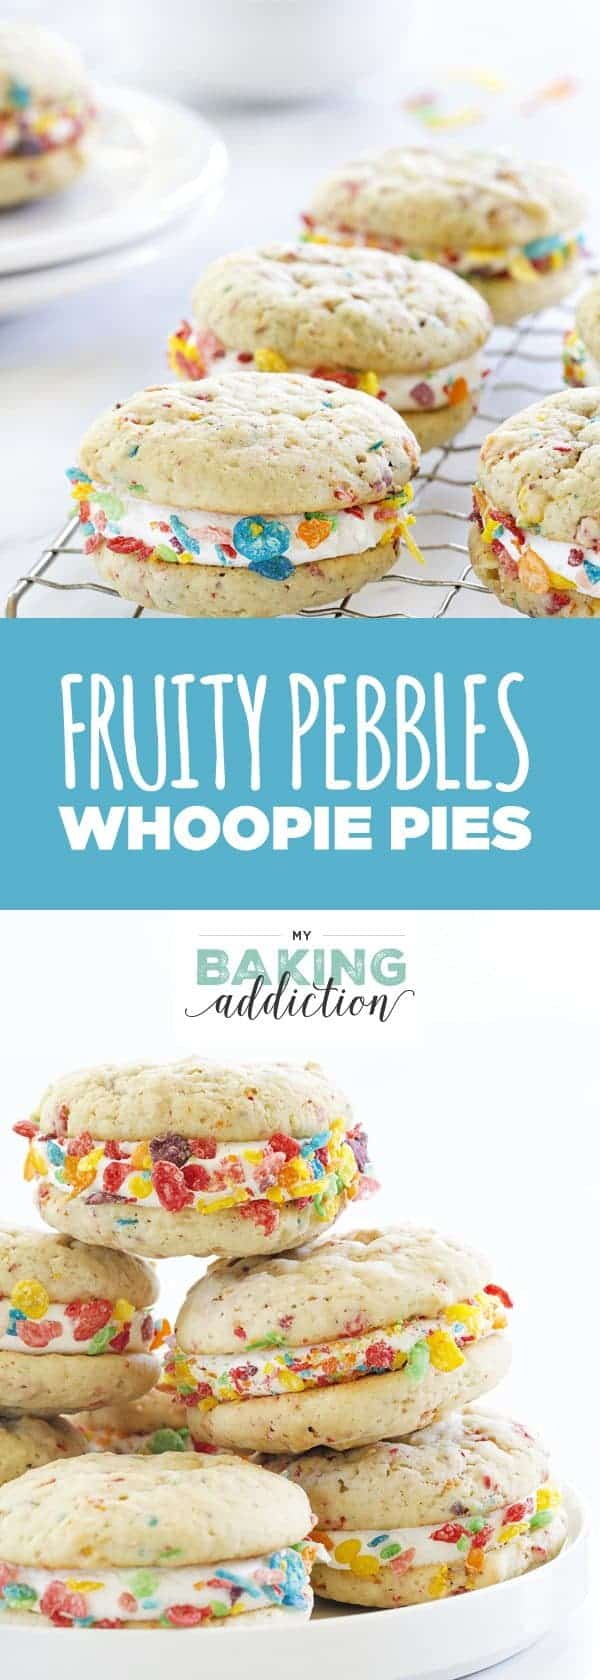 Fruity Pebbles Whoopie Pies are a delicious and fun spin on a classic dessert. The marshmallow buttercream is incredible!